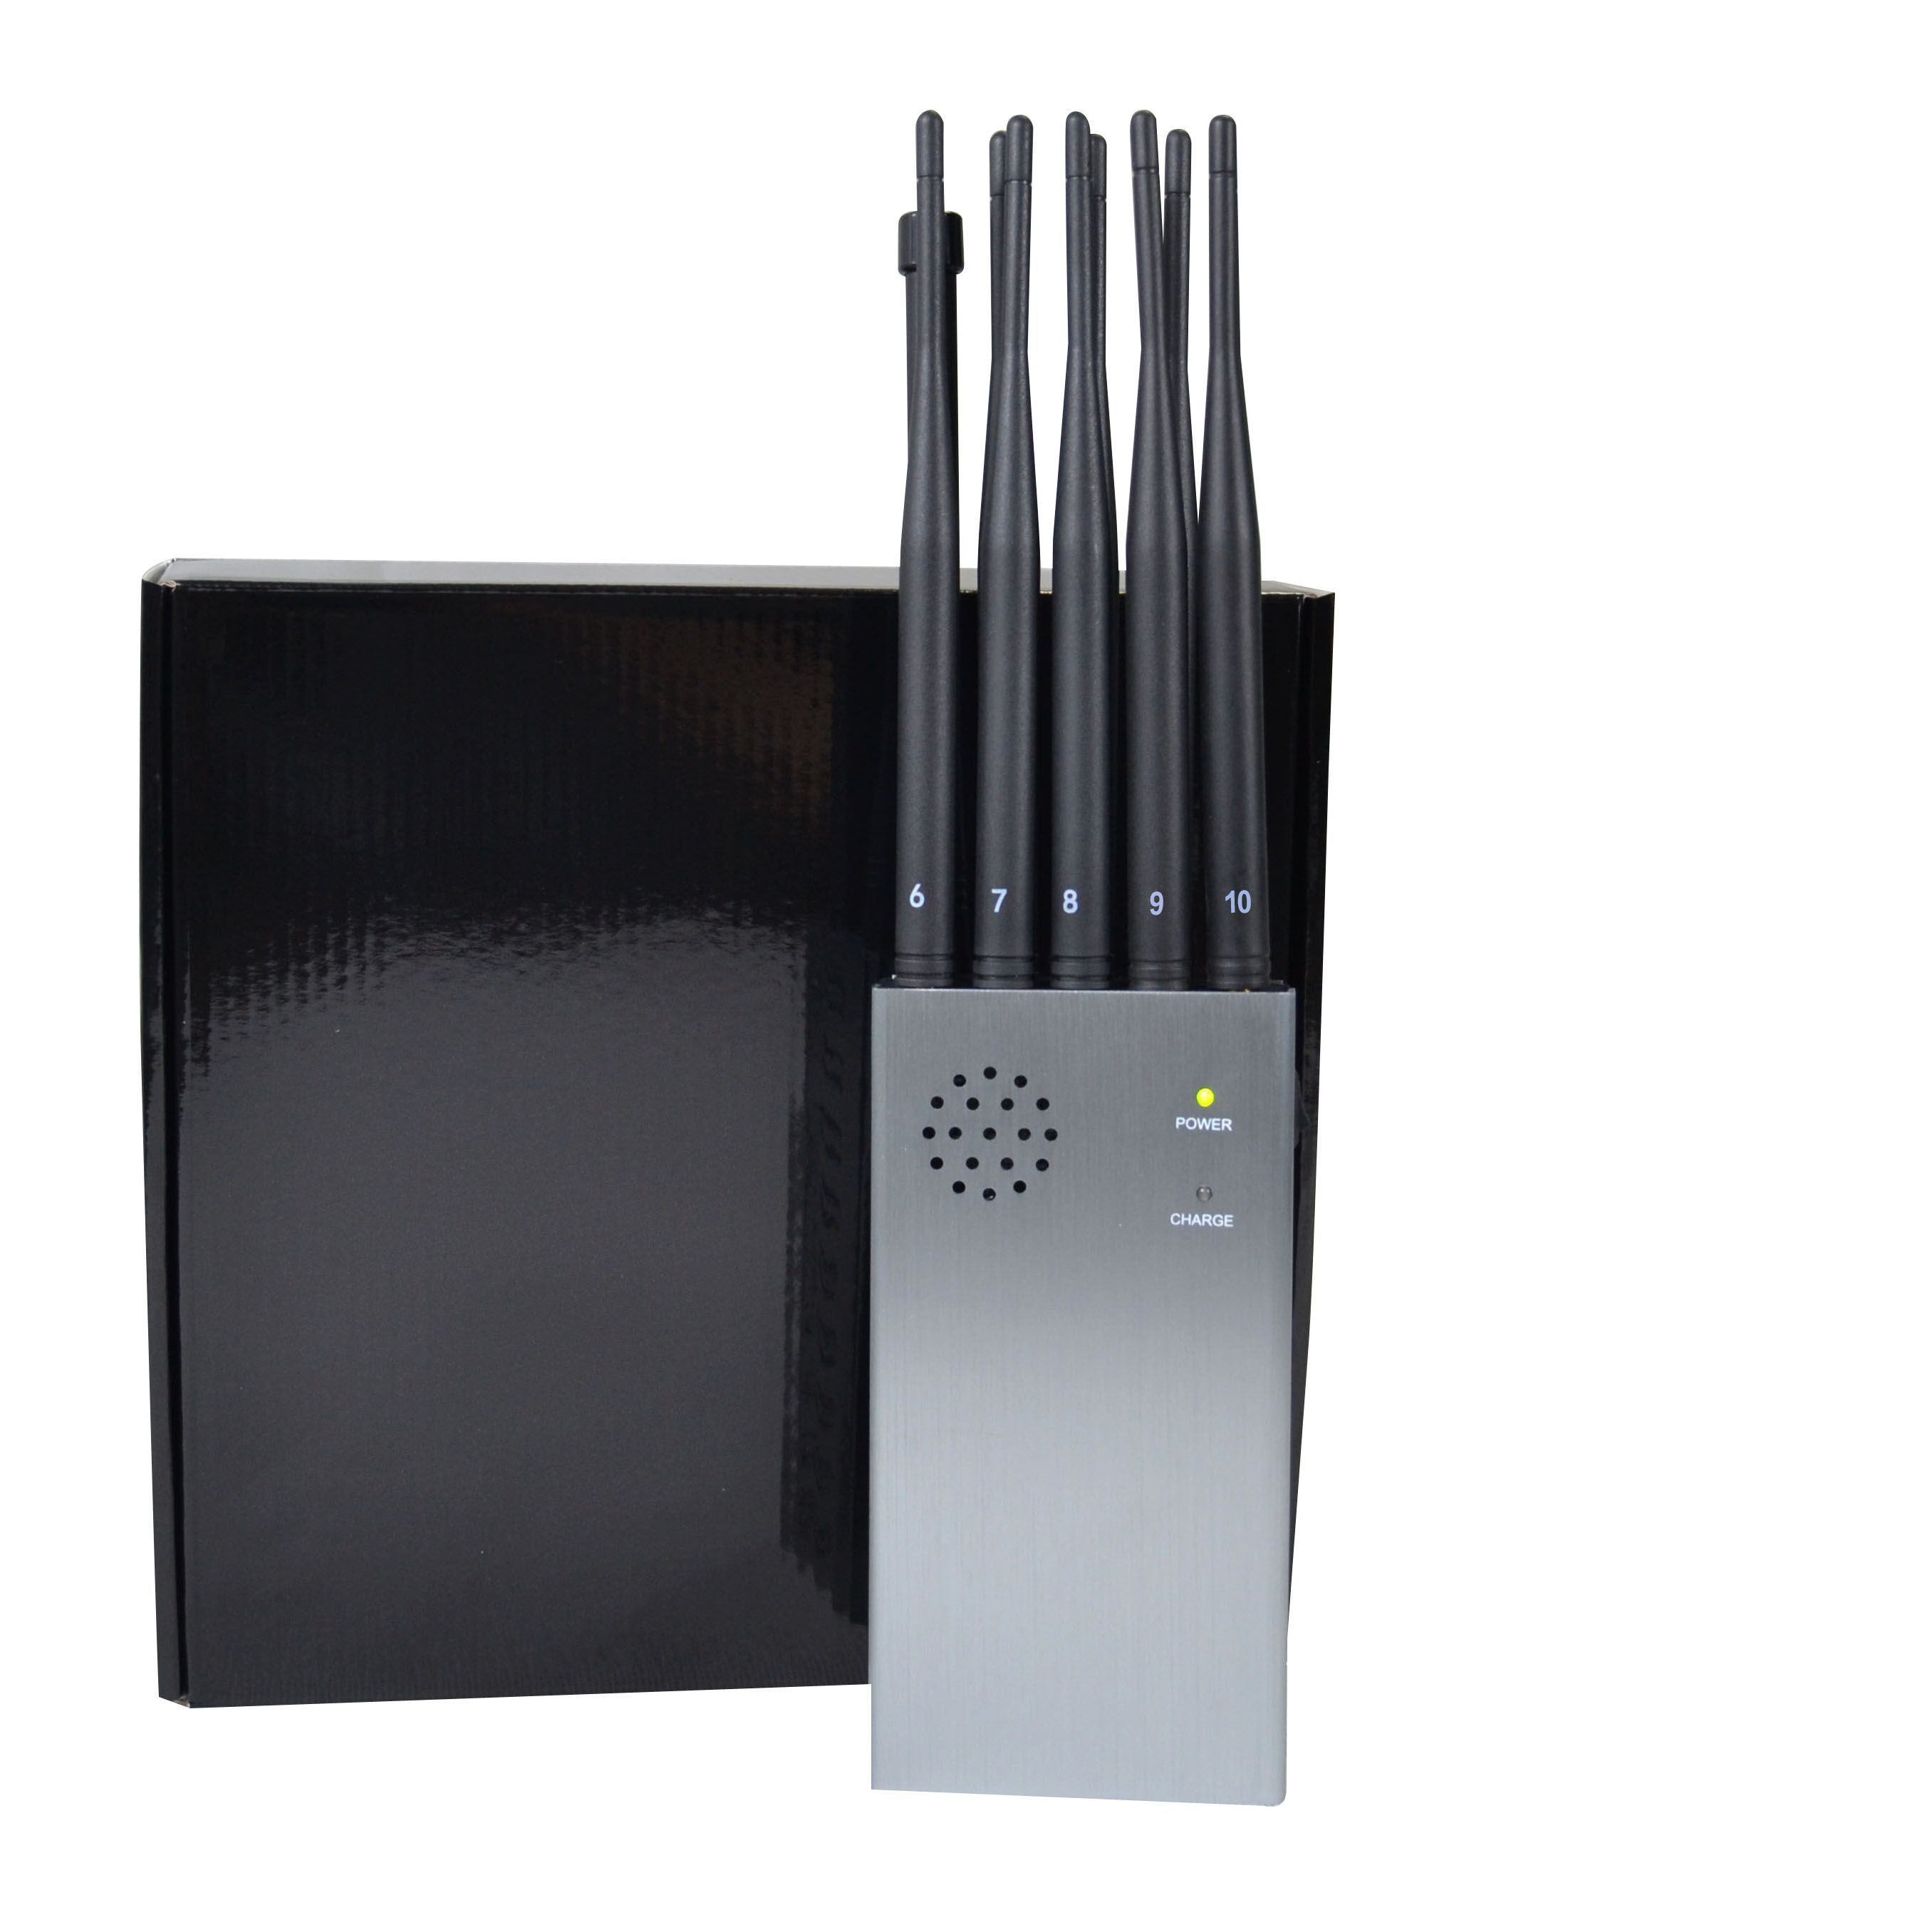 vehicle gps signal jammer toy - China King Jammer with Portable 10 Antennas Including 2g 3G 5g 4G WiFi, GPS Remote Control Lojack Signals - China 8000mA Battery Jammer, Large Volume Power Signal Blocker